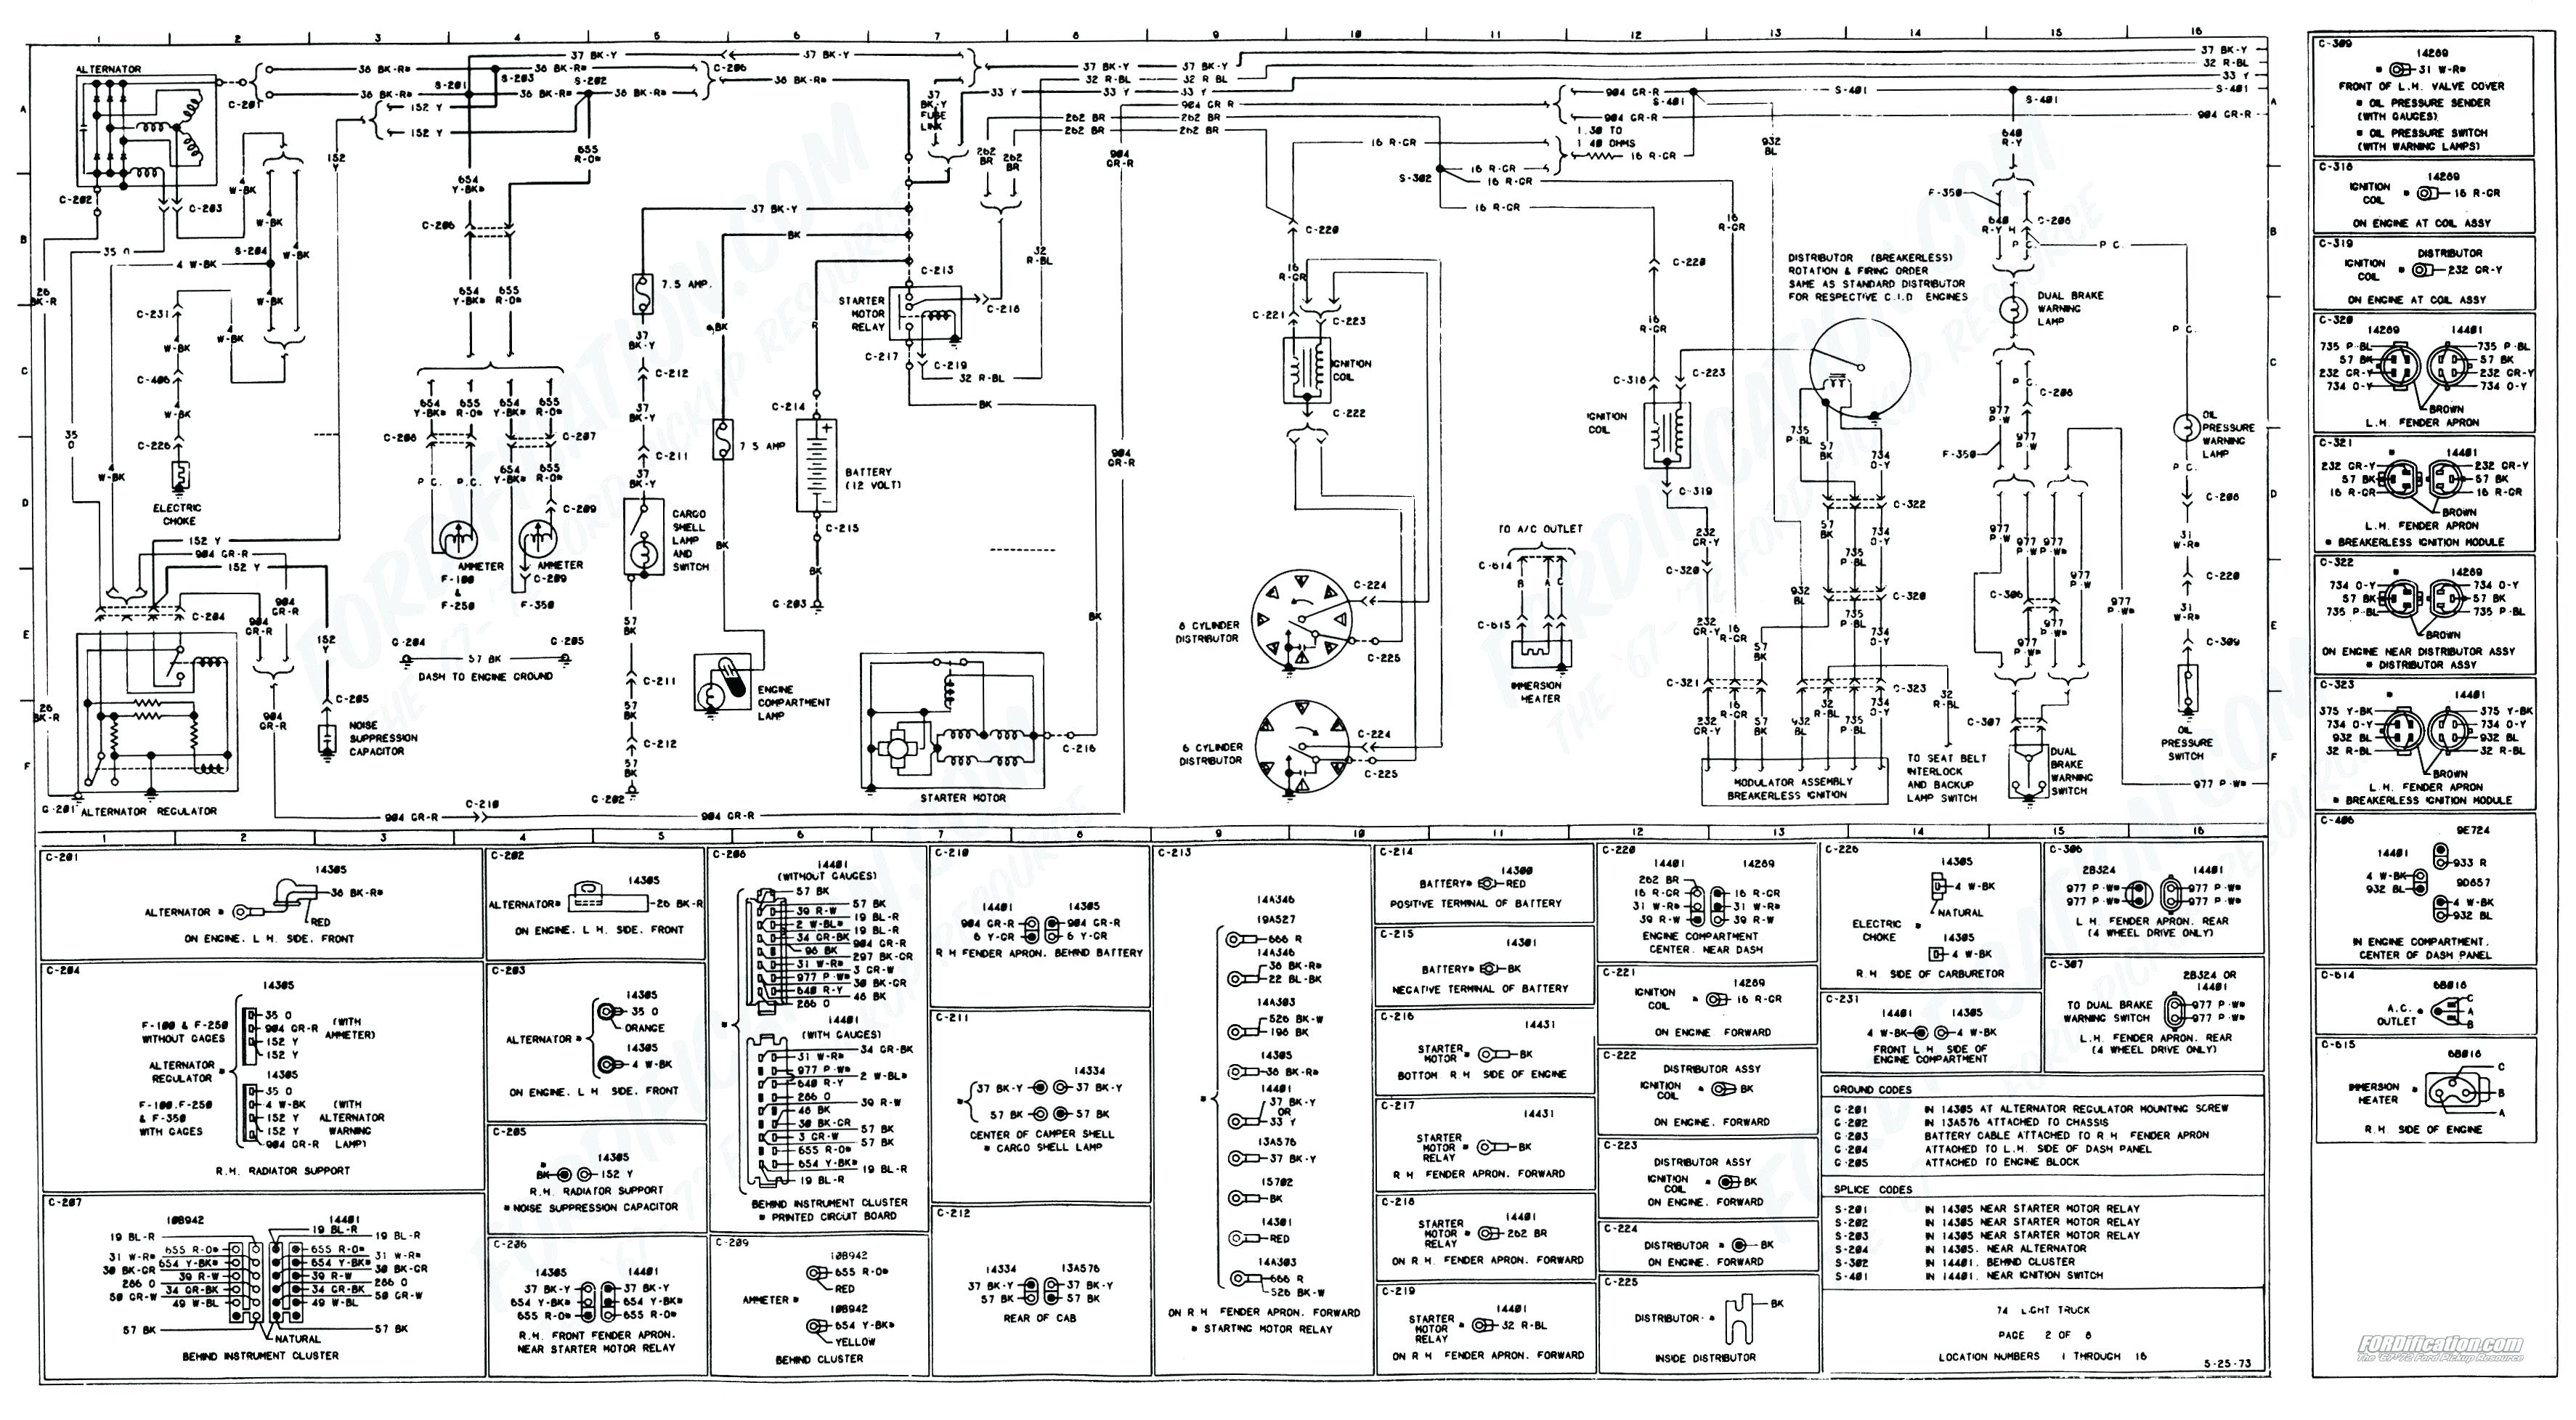 wrg 6251] 2003 ford f650 headlight wiring diagram F750 Wiring Schematic ford f650 wiring diagram 2003 ford f650 fuse box diagram best 2005 f 650 wiring